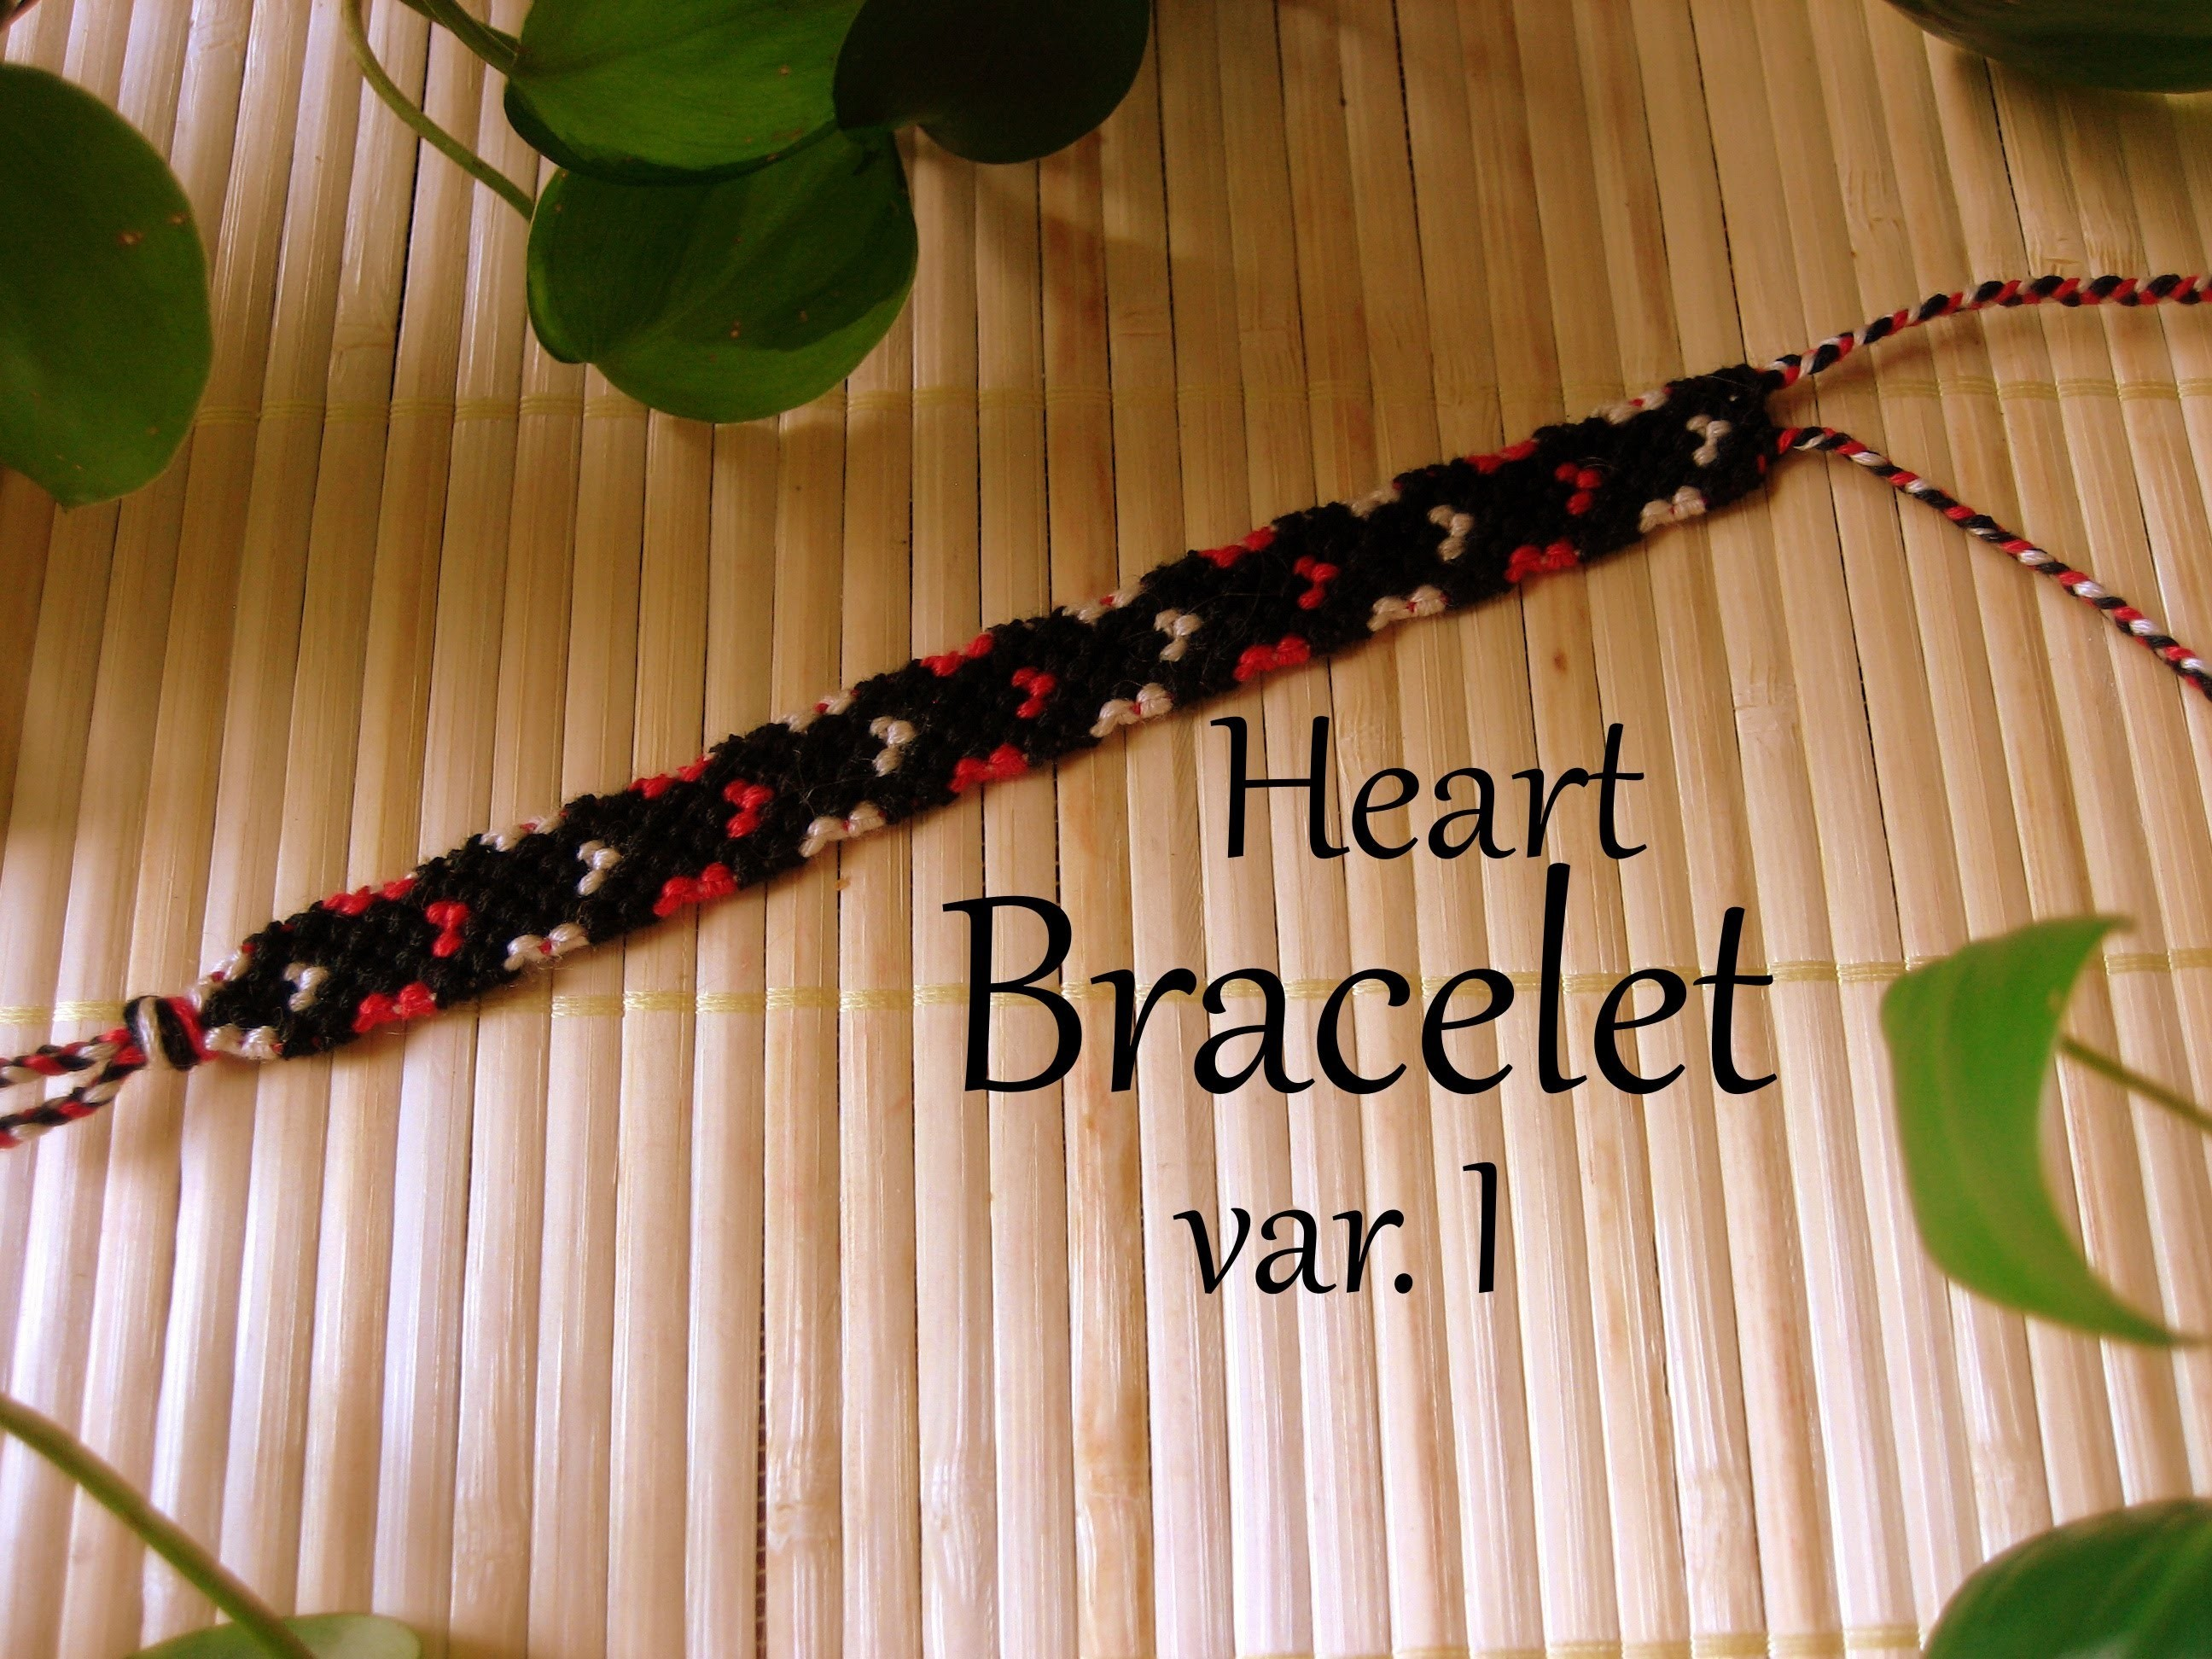 Friendship Bracelet Heart var  I